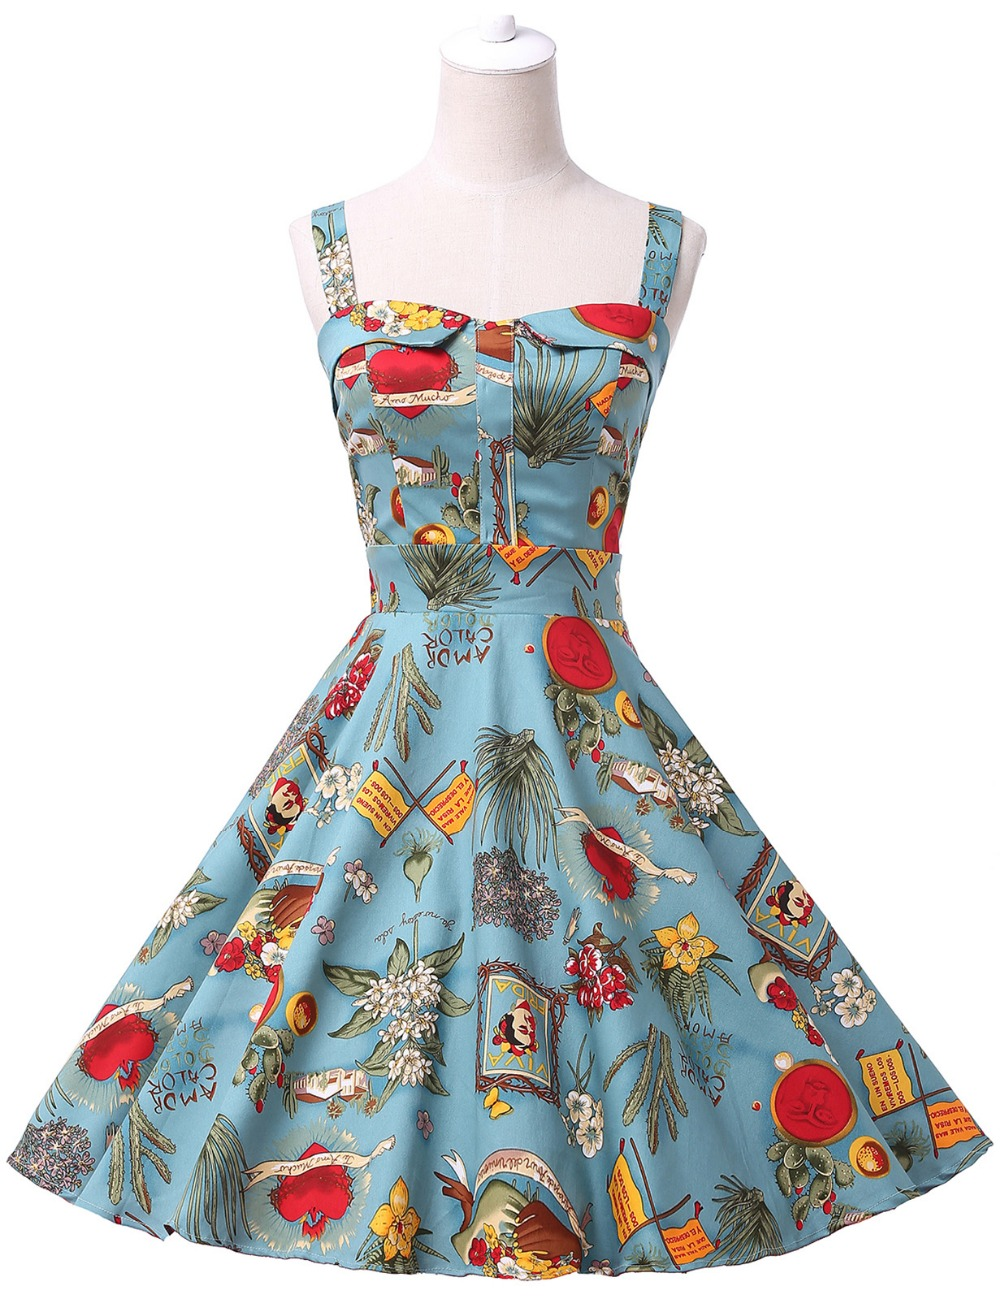 cffc7af4aecf2 Belle Poque Rockabilly Womens Summer Style Dresses 2017 robe Pin Up Retro  Vintage 50s Audrey Hepburn Swing Print Casual Clothing-in Dresses from ...